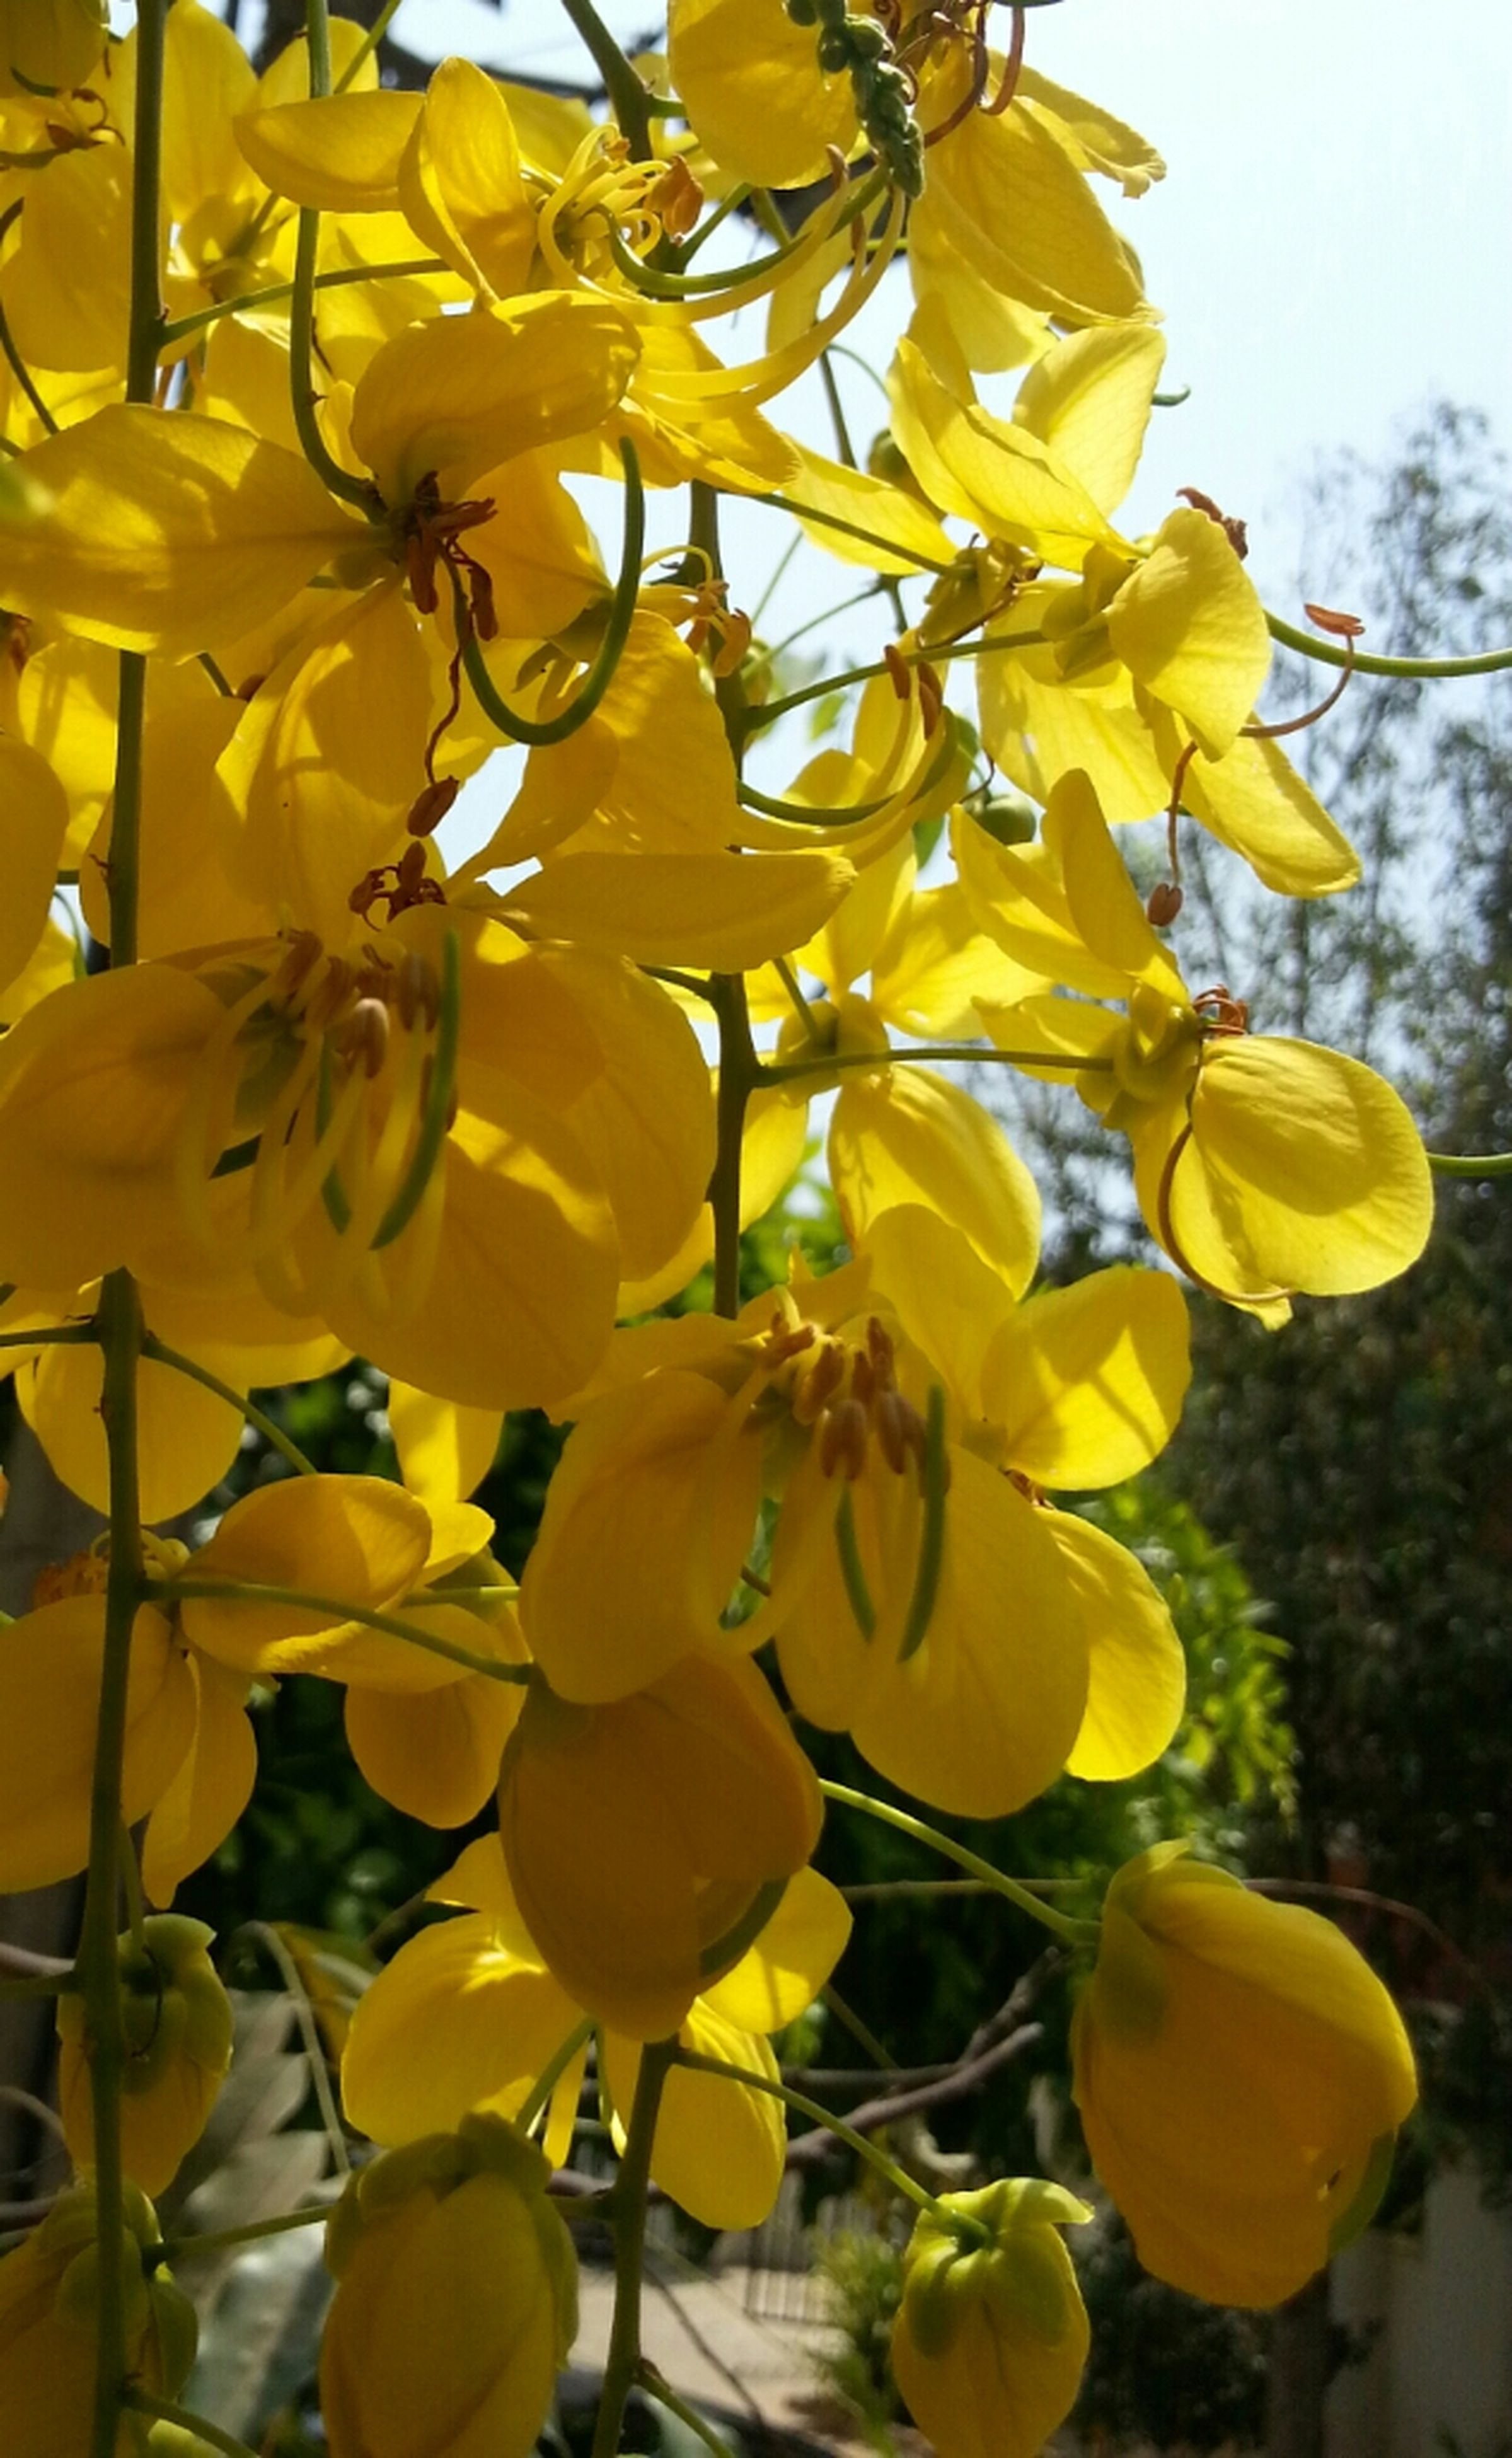 flower, yellow, freshness, growth, fragility, petal, beauty in nature, nature, blooming, focus on foreground, close-up, flower head, low angle view, plant, day, in bloom, tree, branch, leaf, blossom